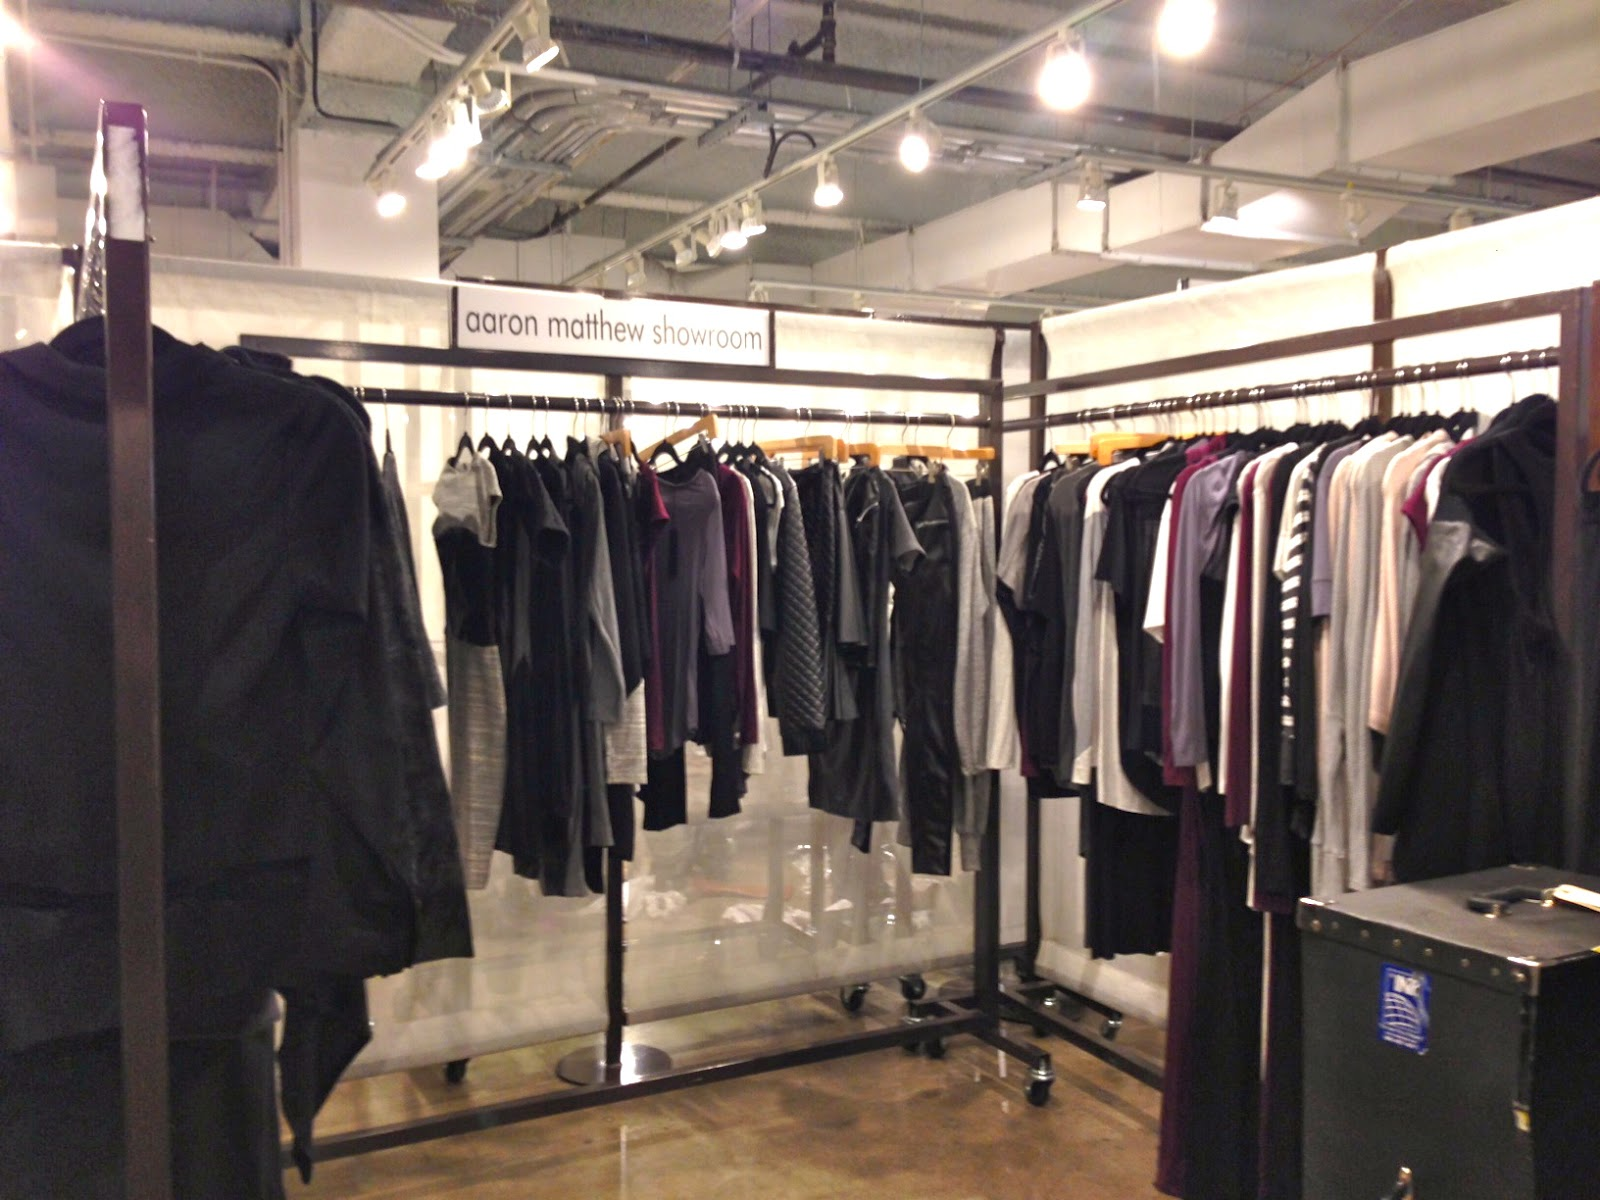 Fashion industry gallery - Come See Us At Fig Fashion Industry Gallery In Front Of Gallery 205